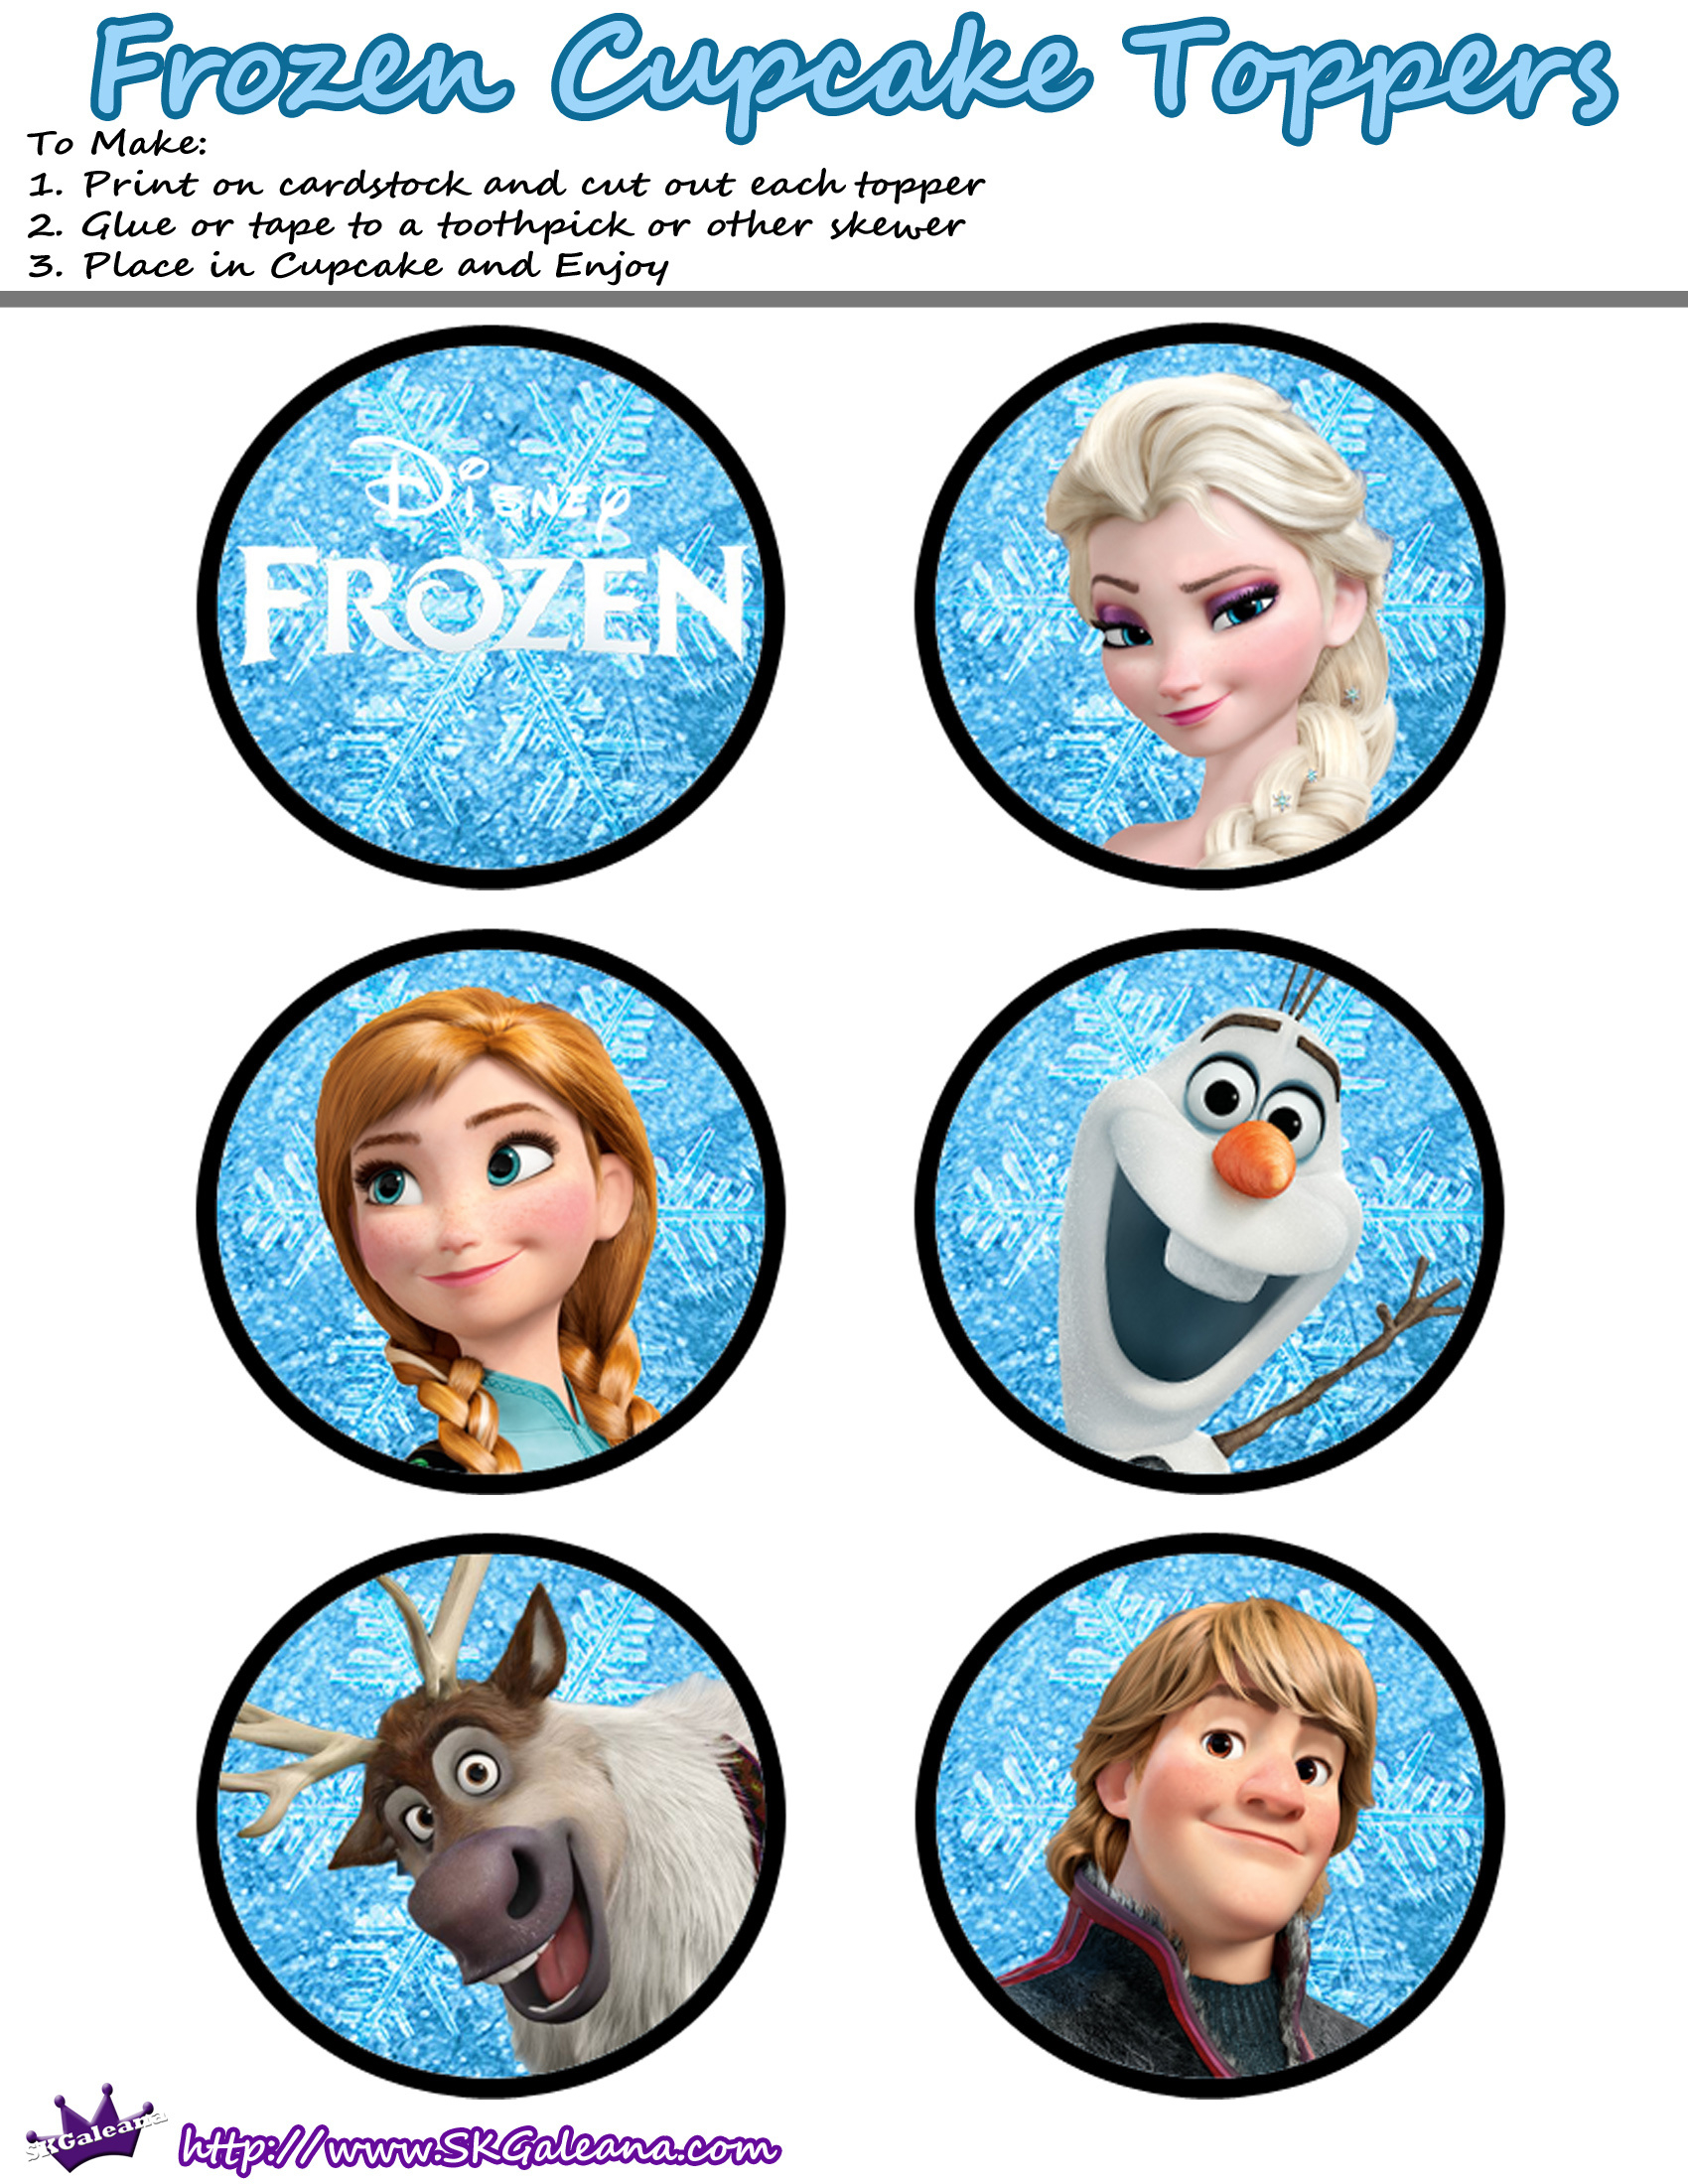 Free Printables For The Disney Movie Frozen | Cake Decorating - Frozen Cupcake Toppers Free Printable